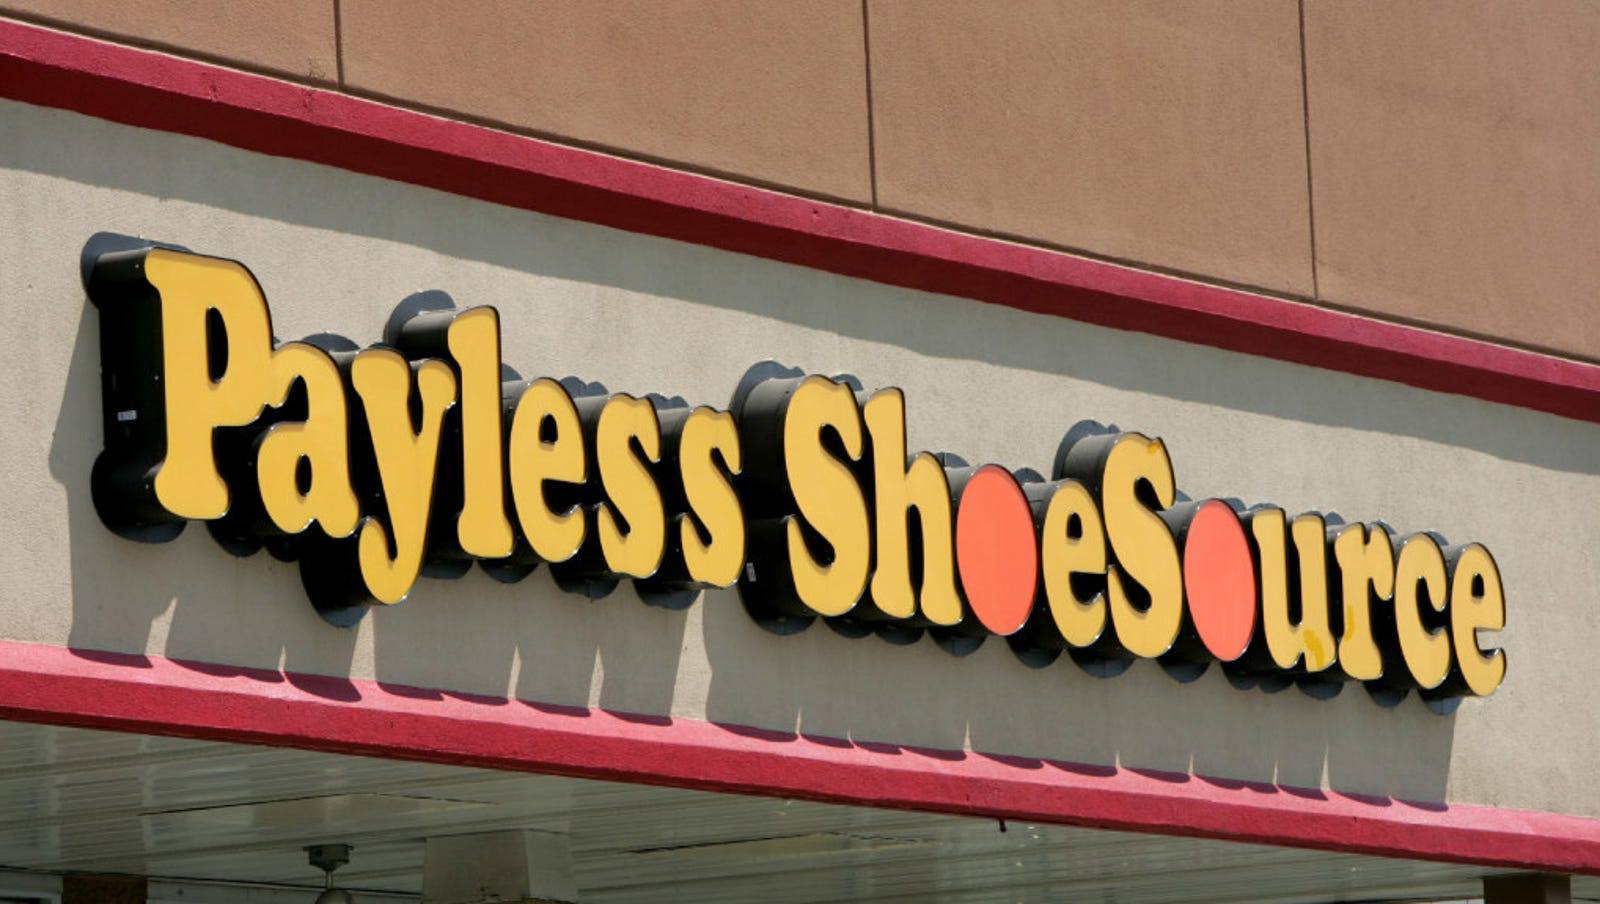 14 New Jersey Payless stores to close this month